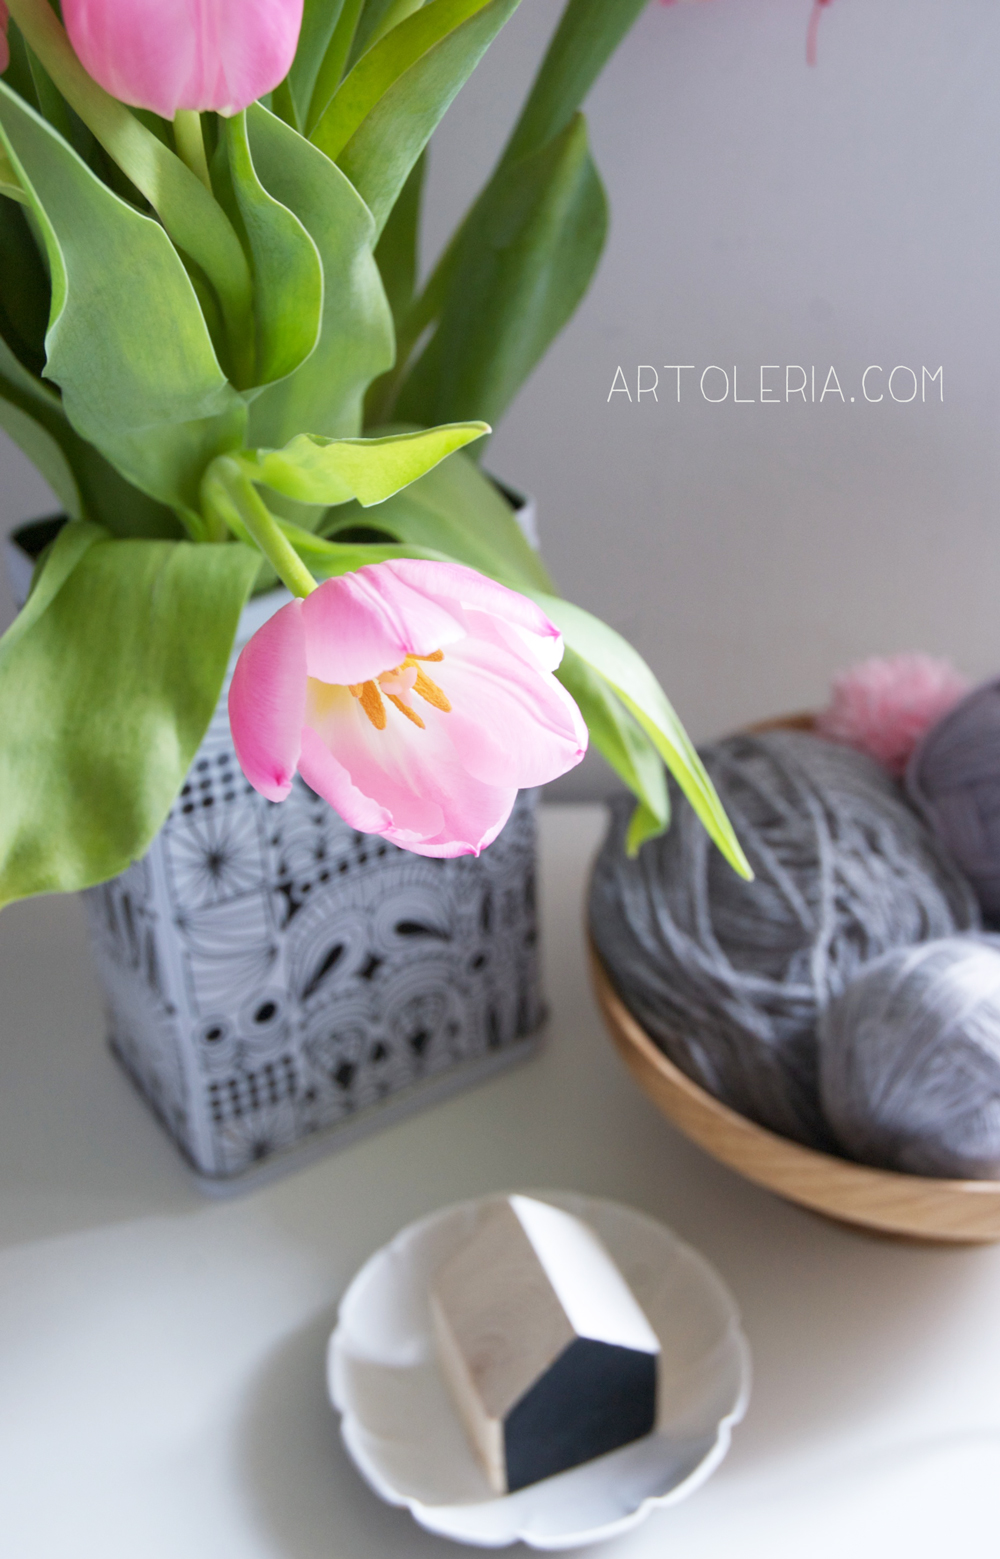 wool and tulips in my desk by Artoleria